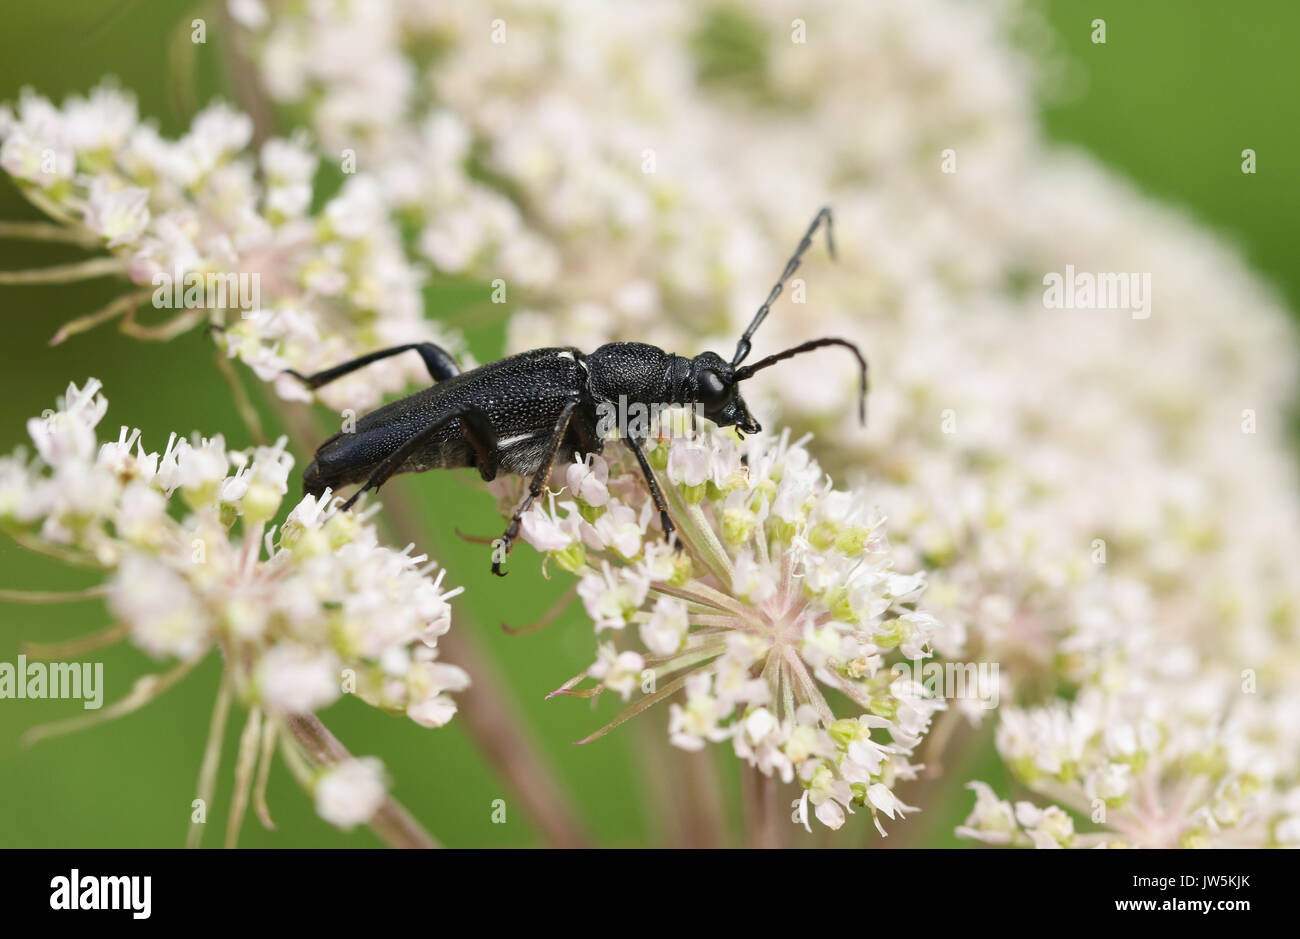 A pretty Black Longhorn Beetle nectaring on a flower. - Stock Image